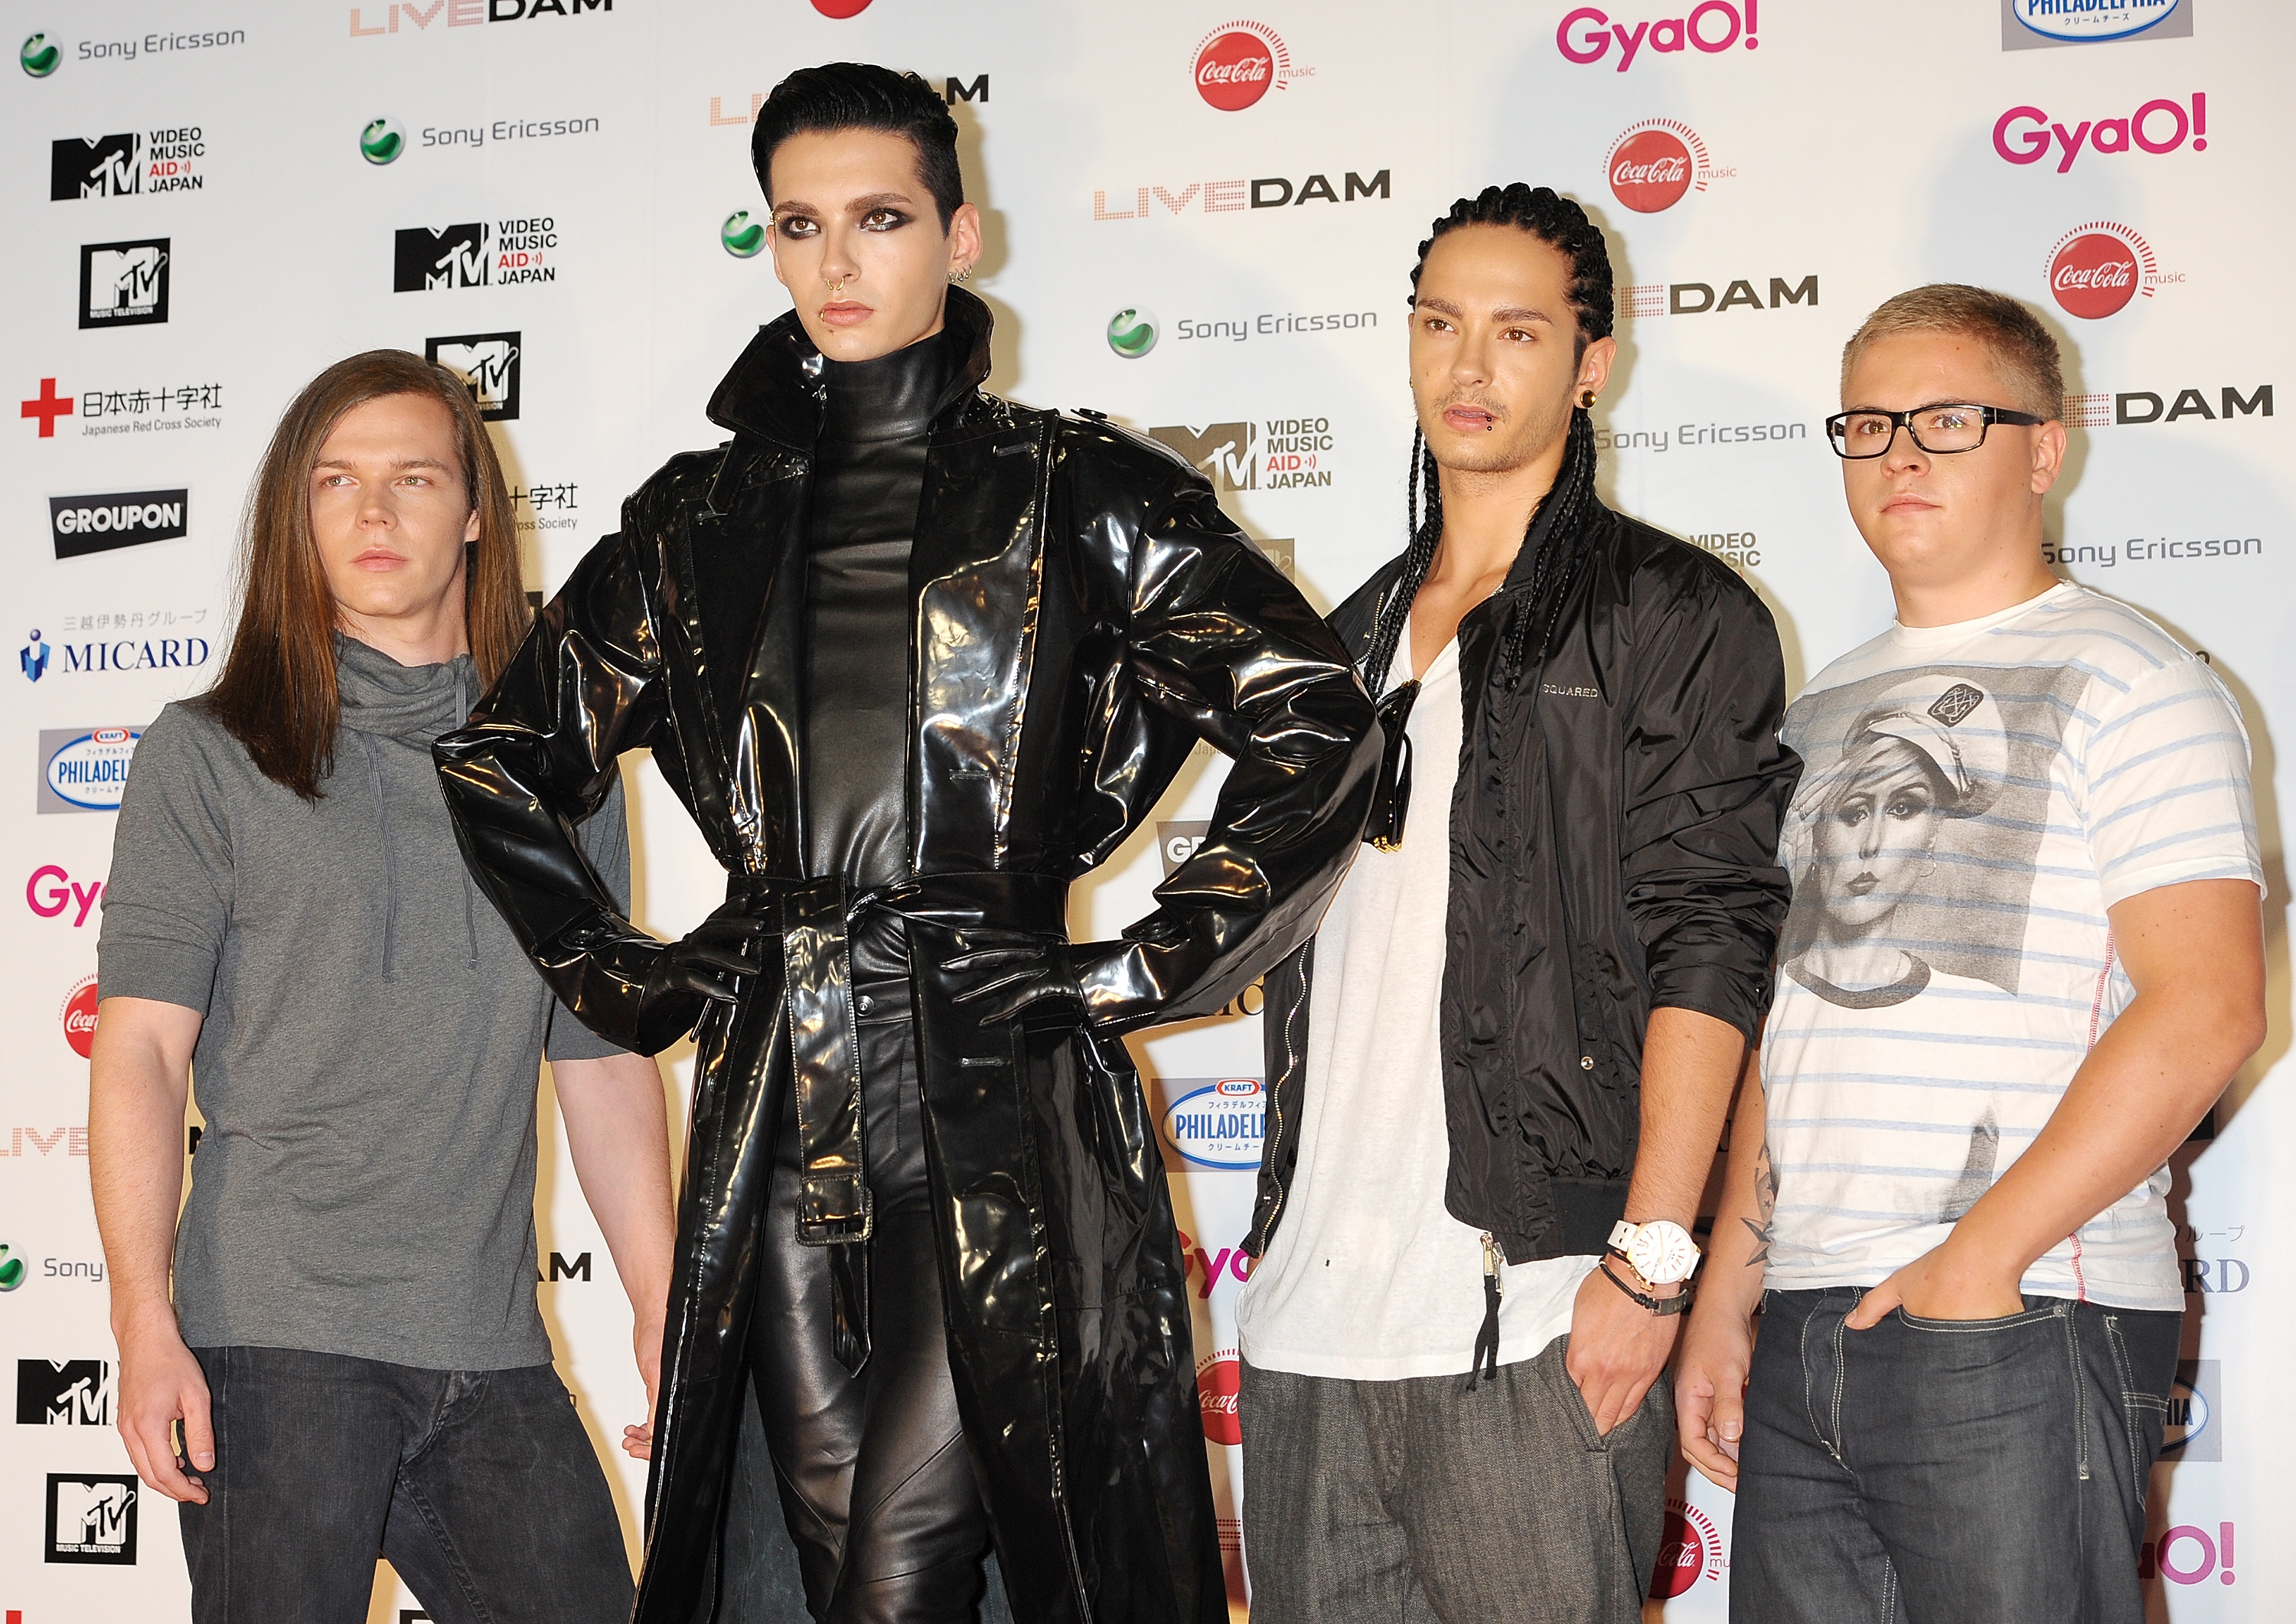 Tokio Hotel Wallpaper For Computer